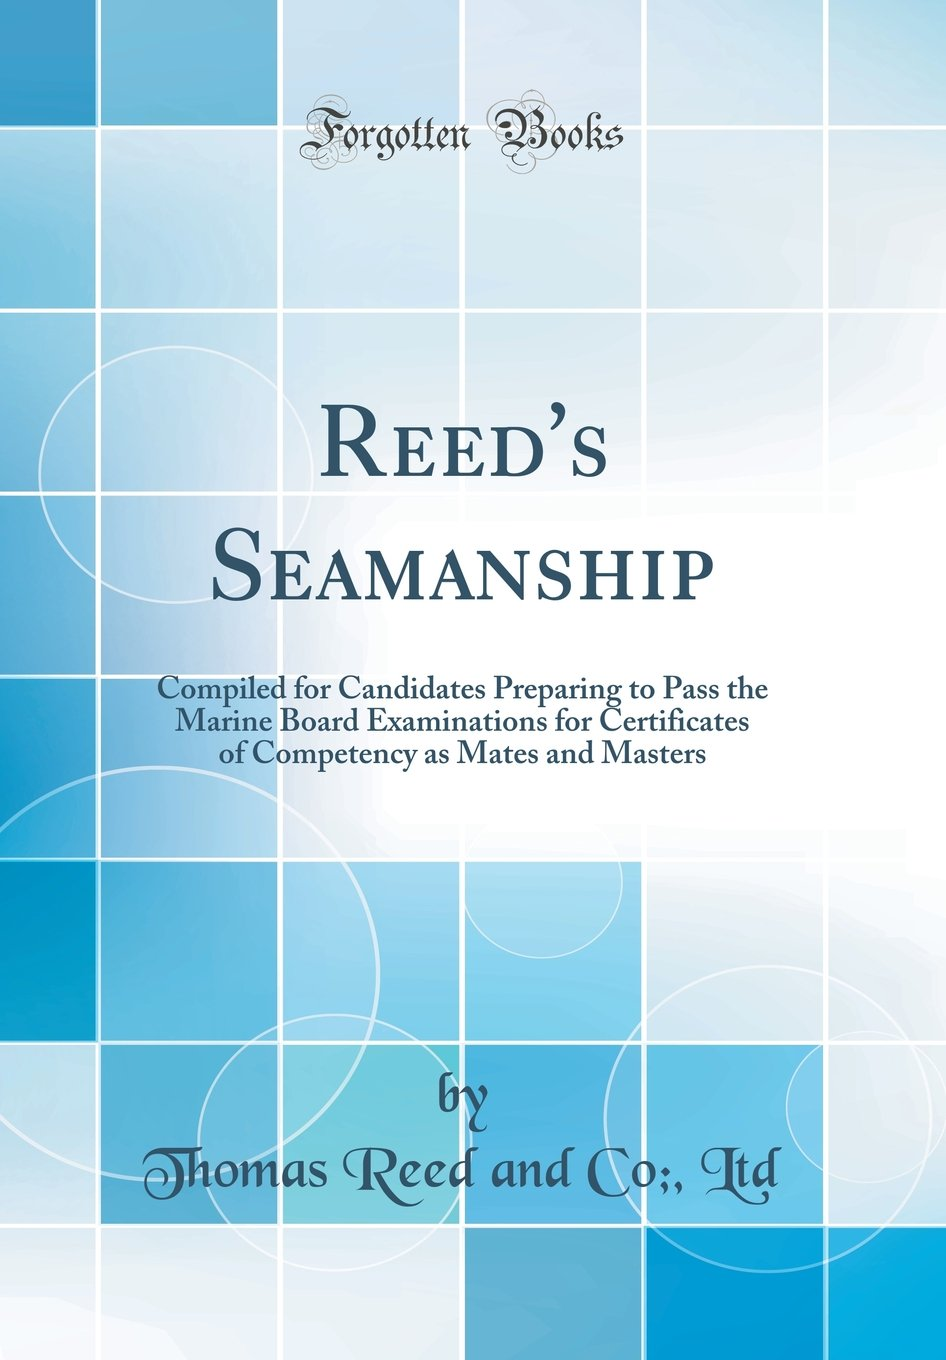 Download Reed's Seamanship: Compiled for Candidates Preparing to Pass the Marine Board Examinations for Certificates of Competency as Mates and Masters (Classic Reprint) PDF